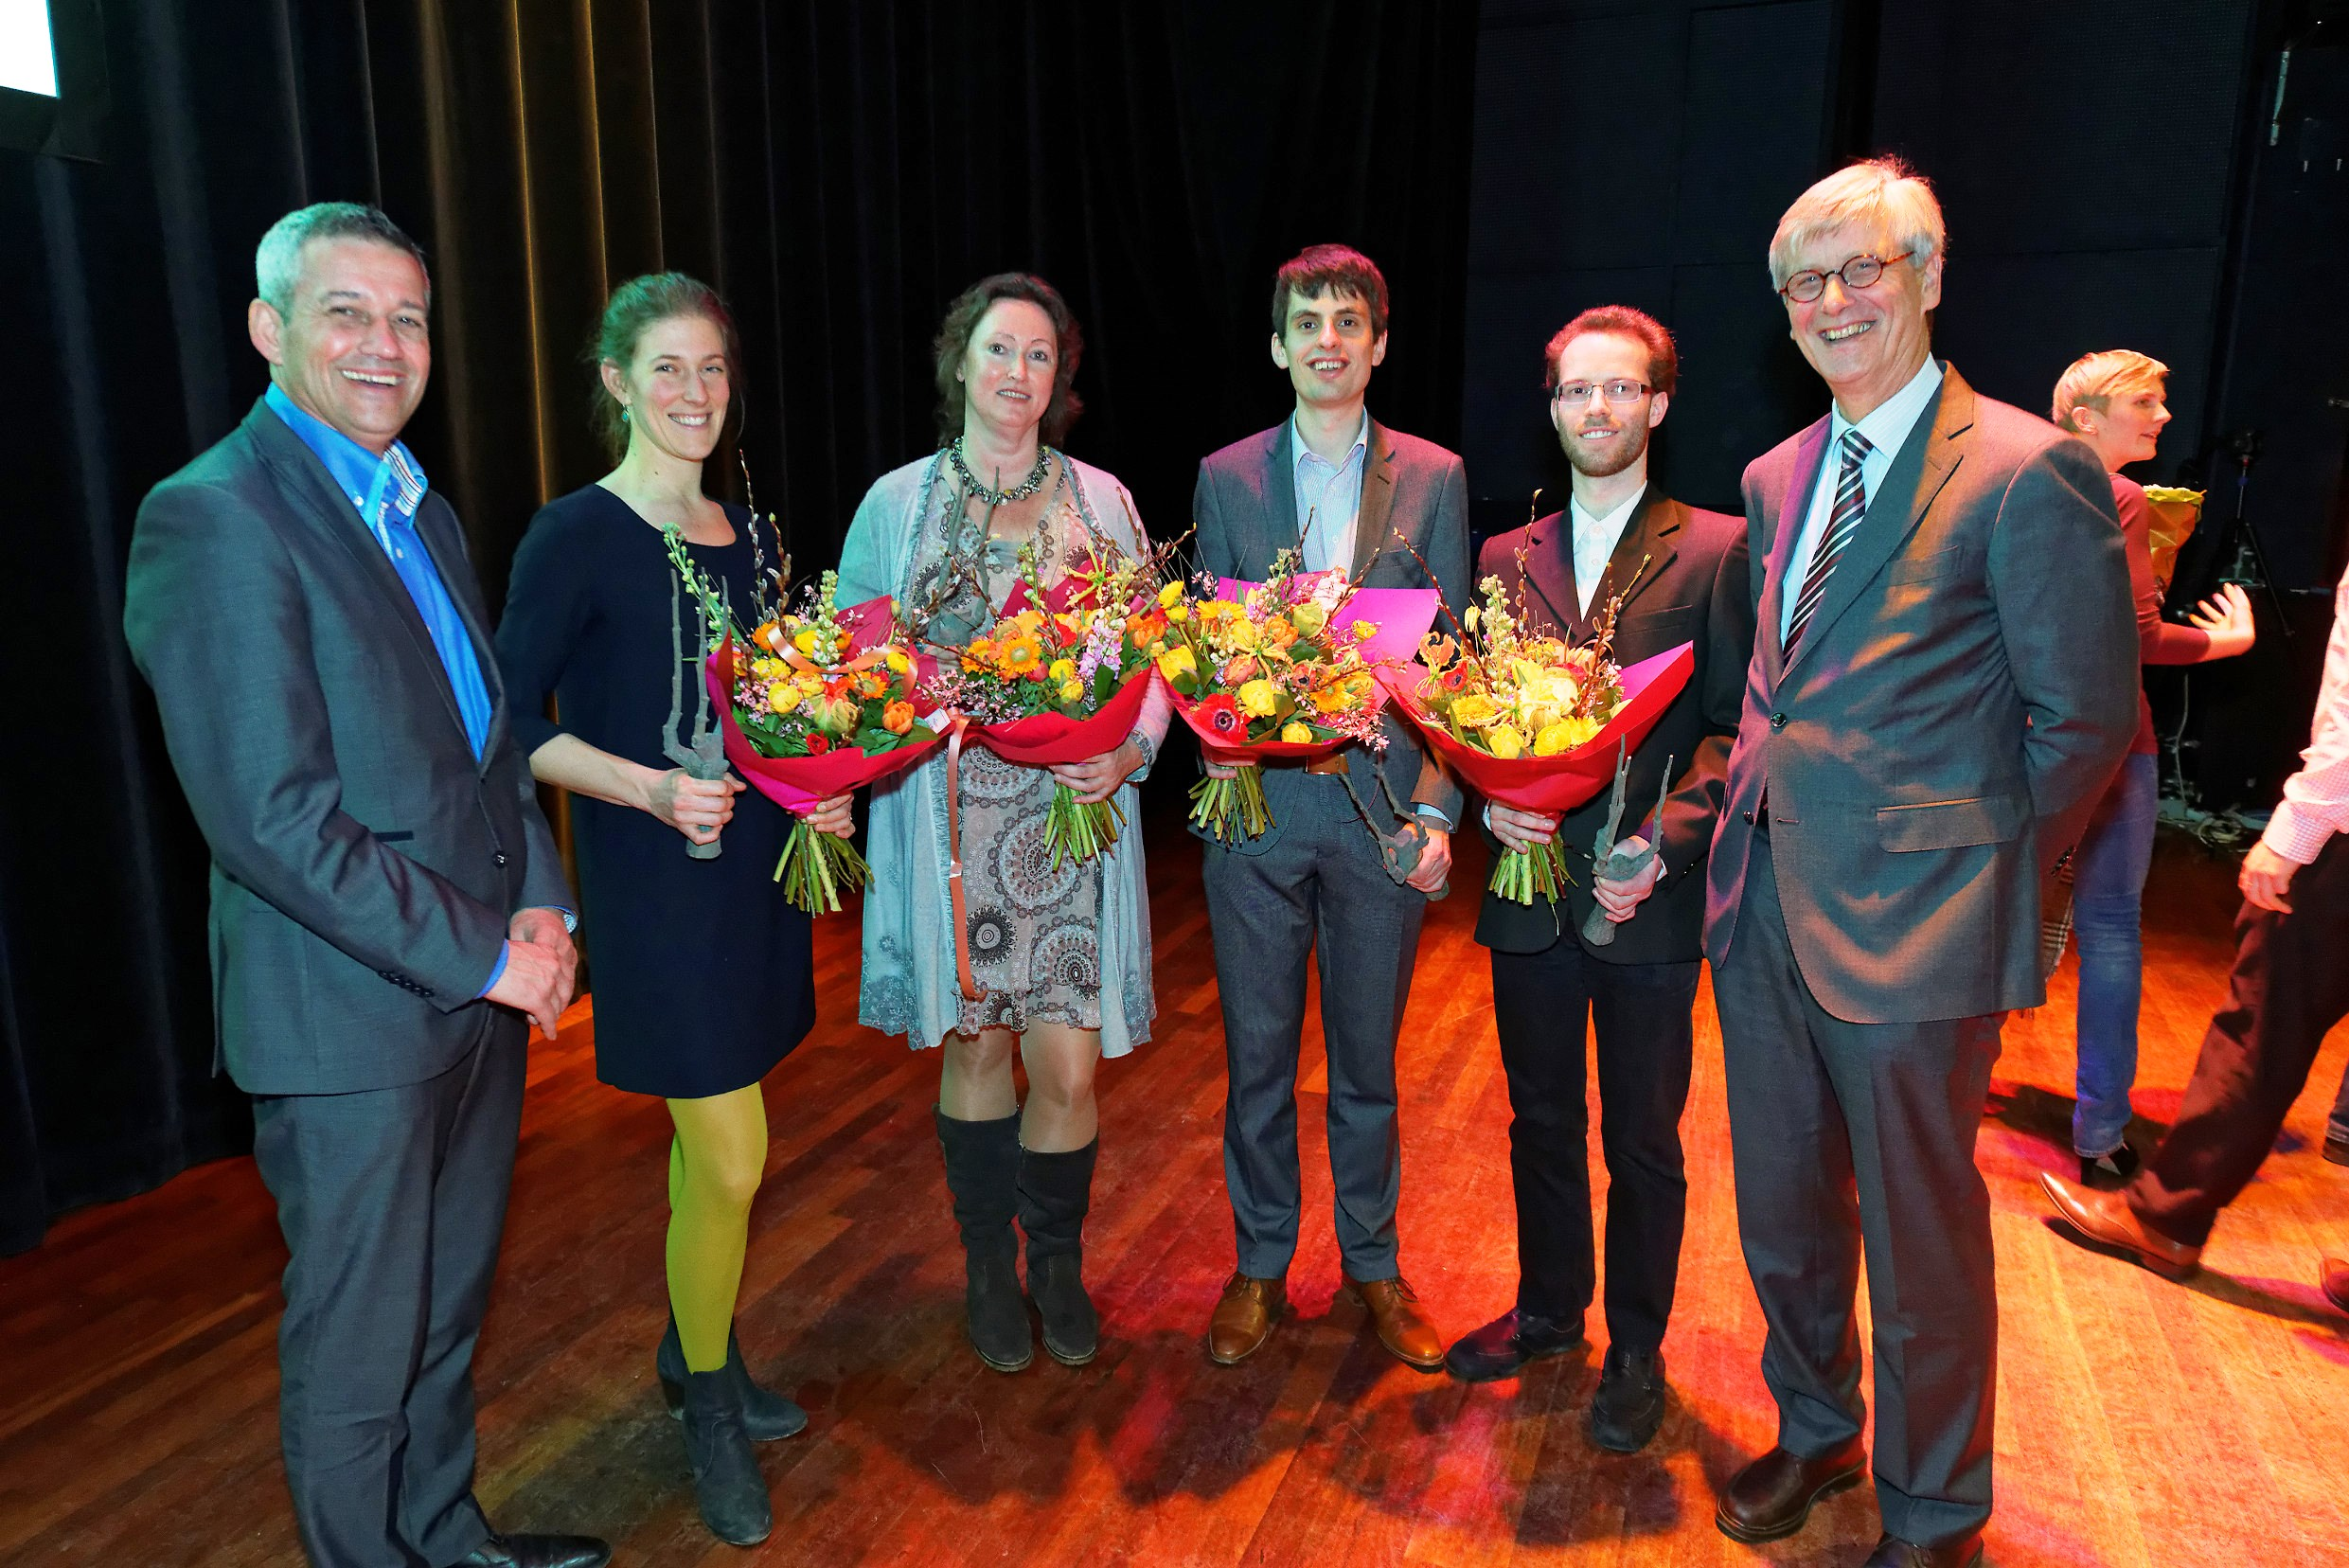 F.l.t.r.: dr. Han Swinkels (president of KLV), Lena Schulte-Uebbing, Jacqueline Zappeij (mother of Nick Middeldorp), Berend van der Meer, Uroš Cerkvenik (overall winner) and prof.dr. Just Vlak (president of the jury)